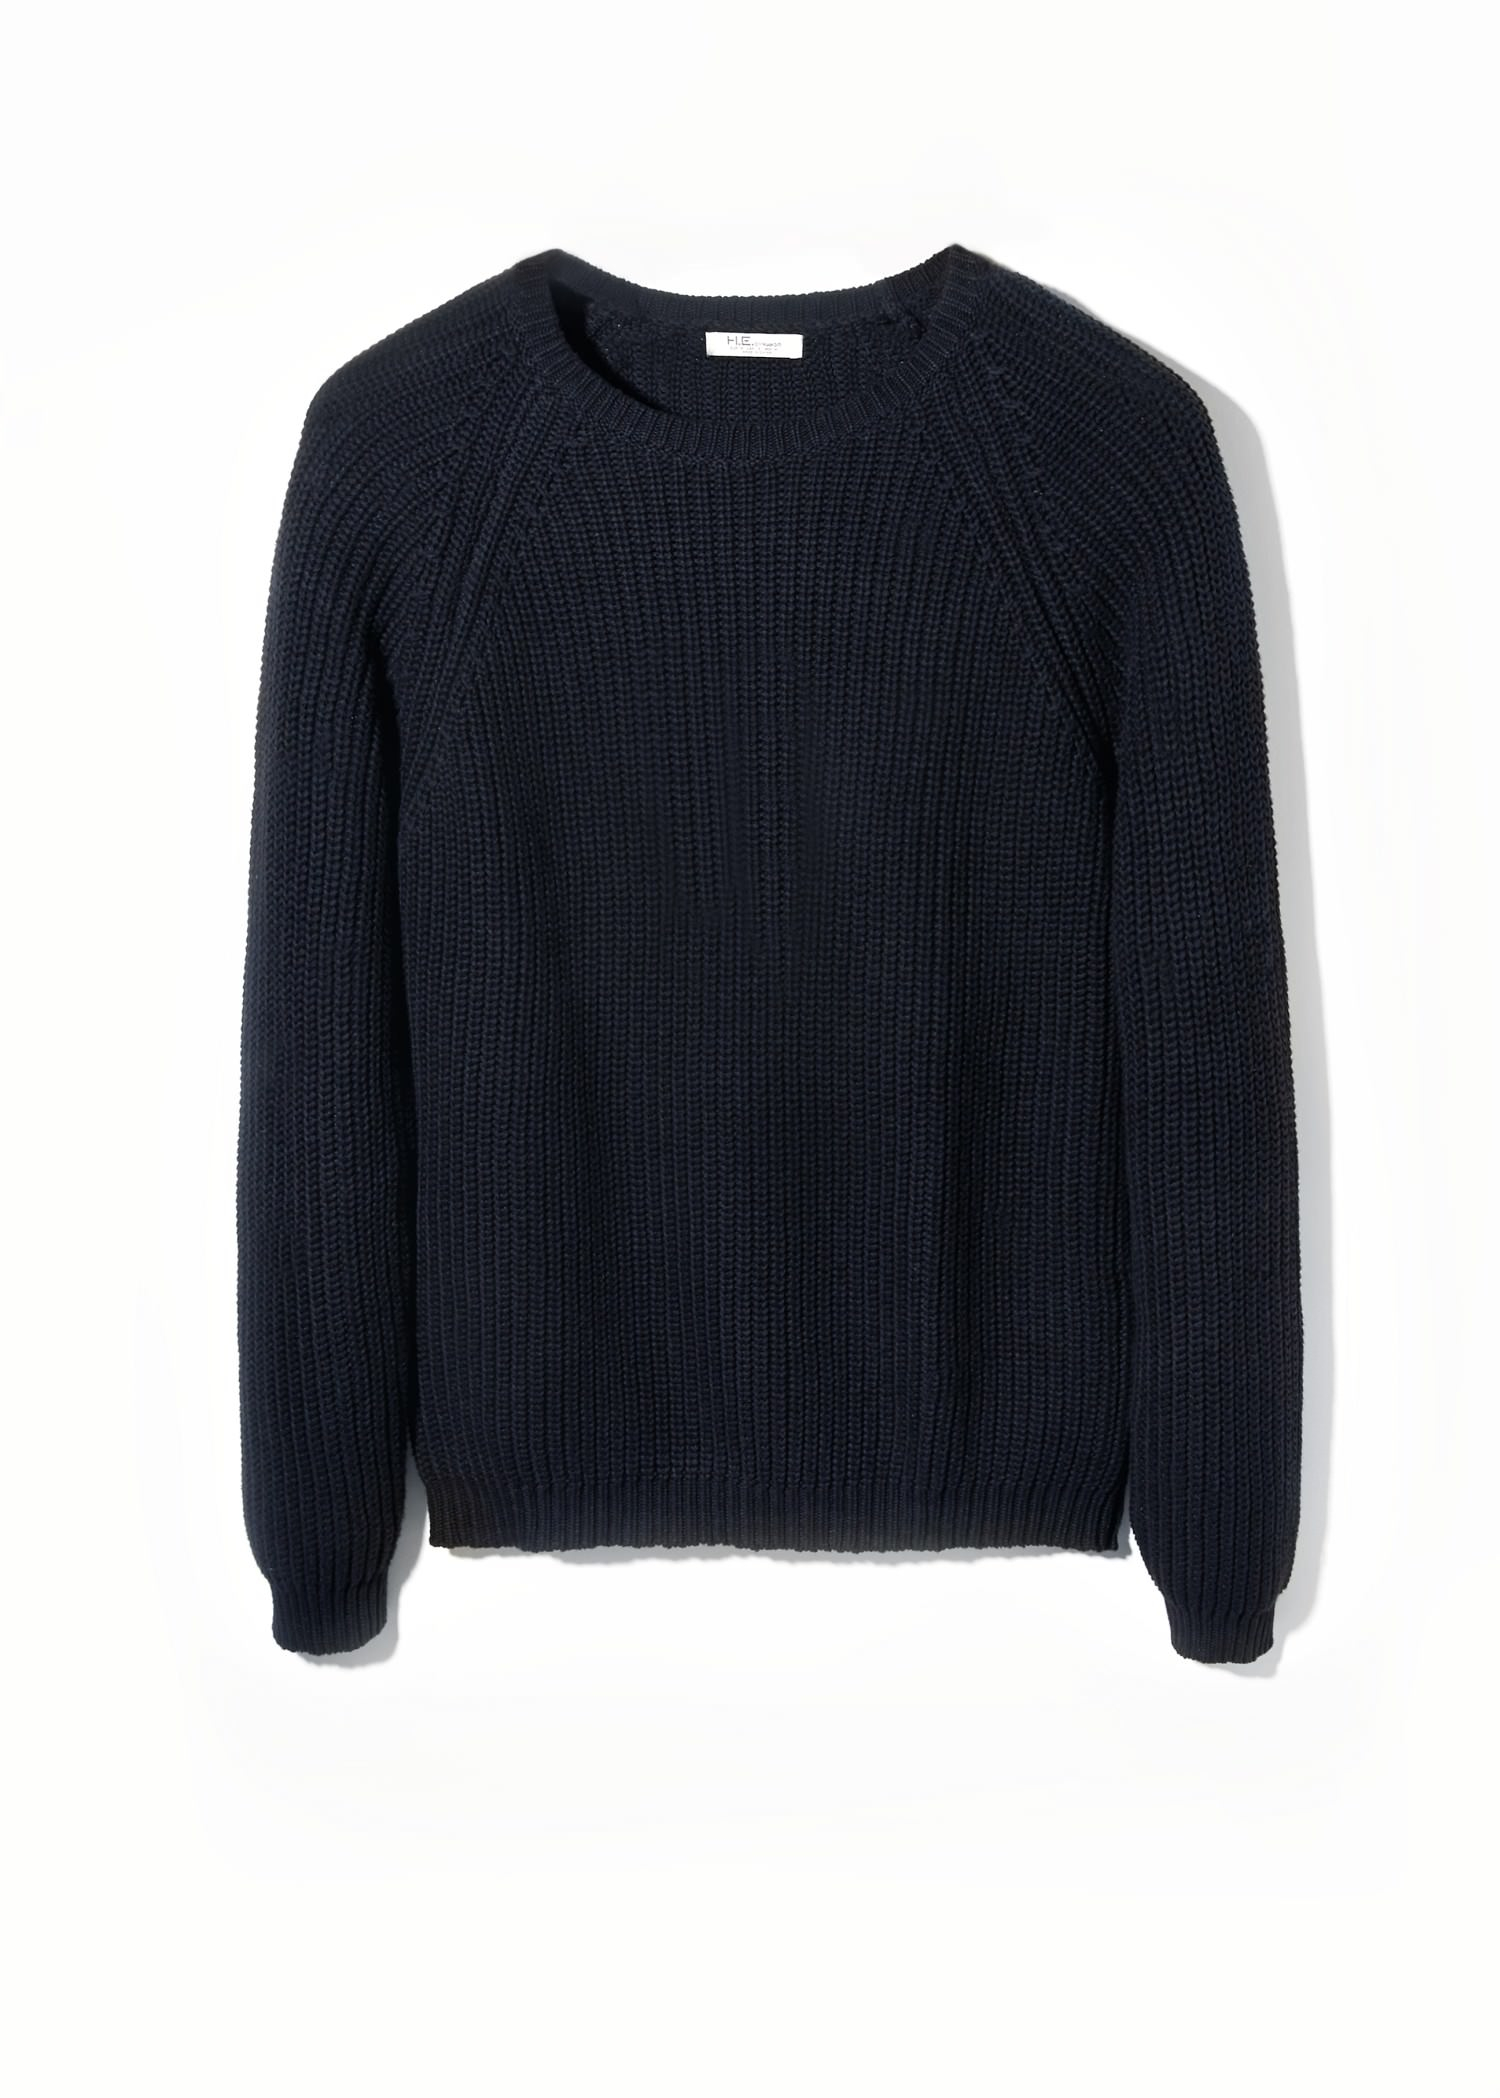 Mango Cotton Chunky-Knit Sweater in Black for Men | Lyst